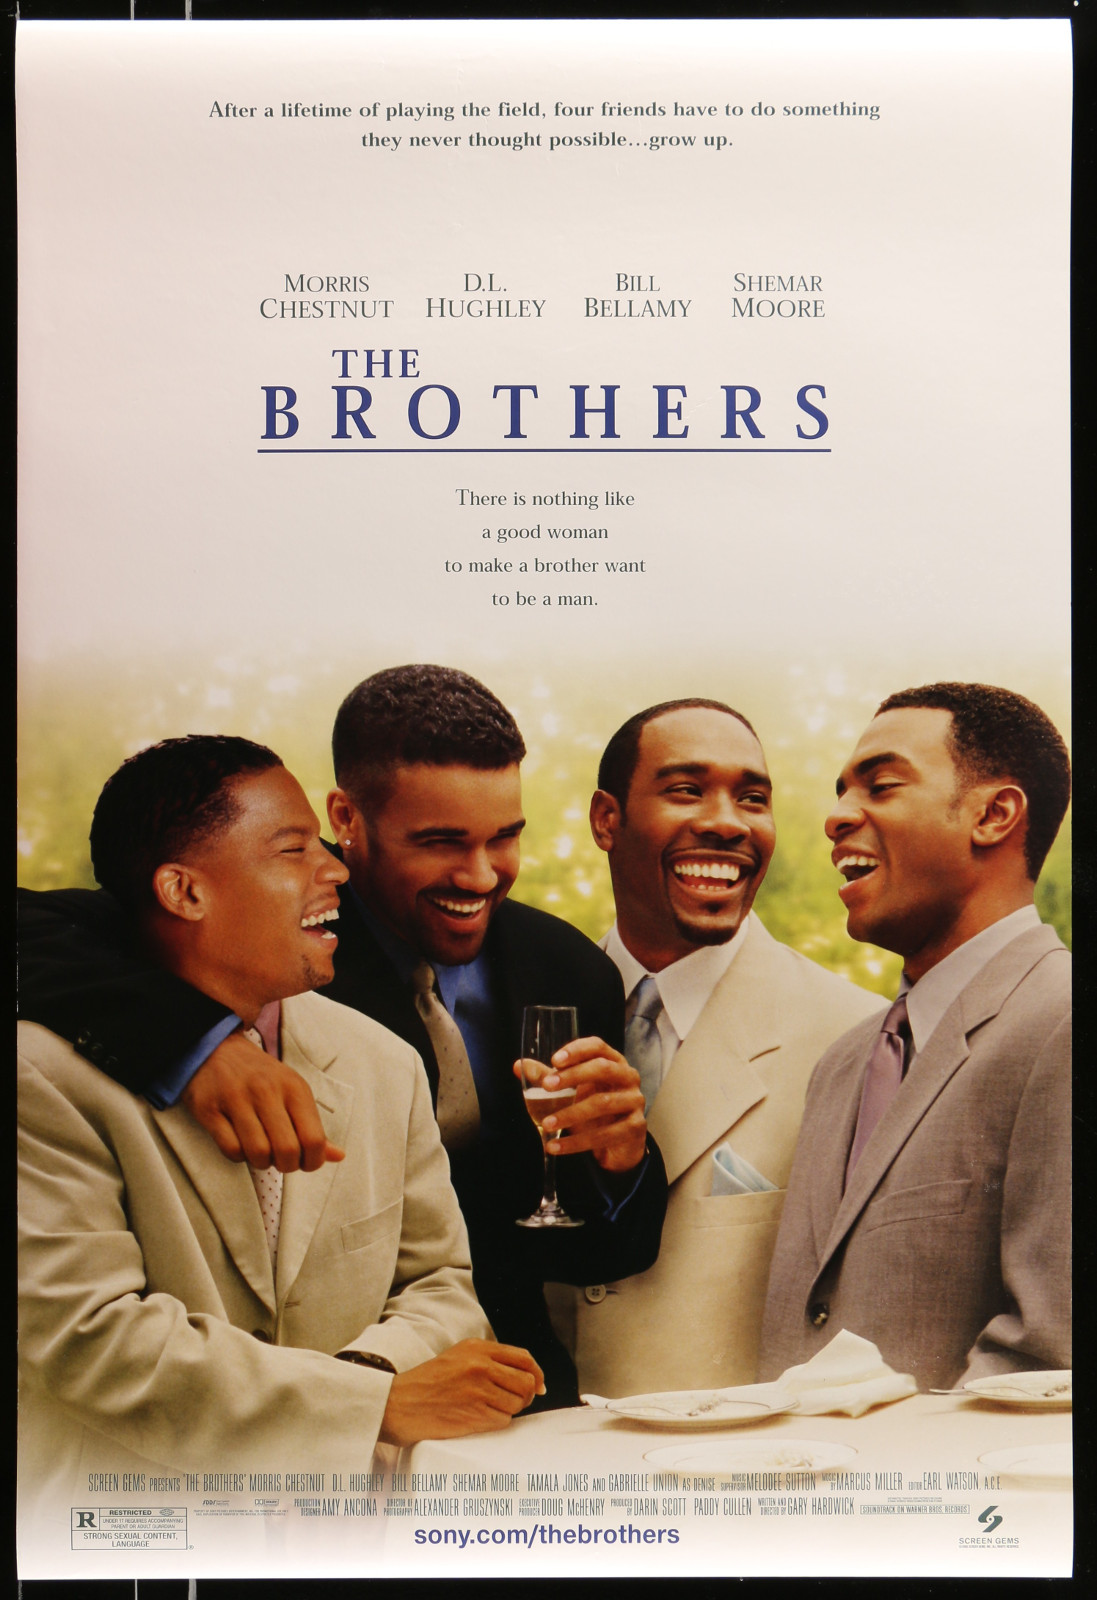 The Brothers 2A413 A Part Of A Lot 20 Unfolded Mostly Double-Sided 27X40 One-Sheets '90S-00S Great Movie Images!